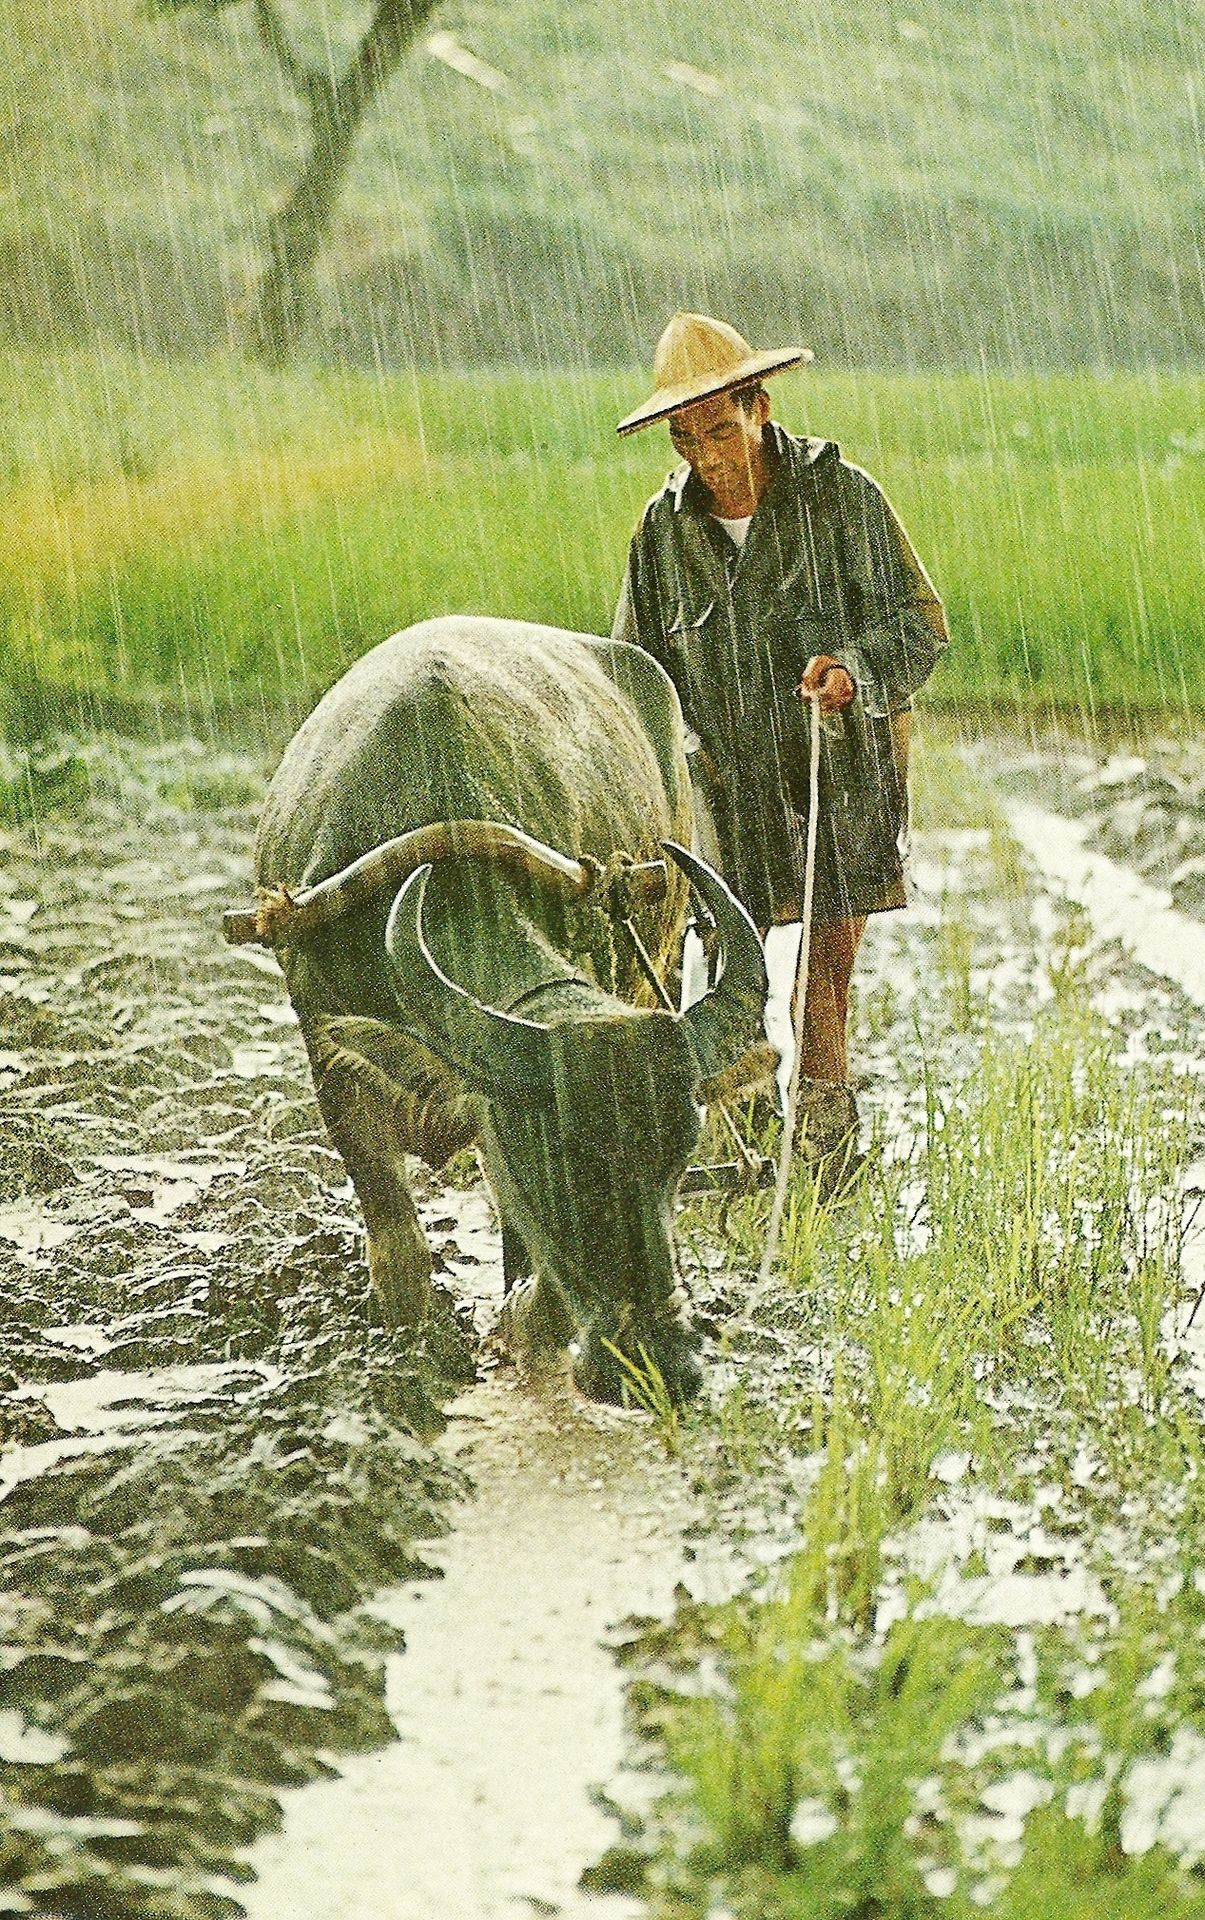 A Water Buffalo In Taiwan Draws His Masters Plow Through A Field Soaked By The Monsoons Deluge National Geographic Ja National Geographic Water Buffalo Photo